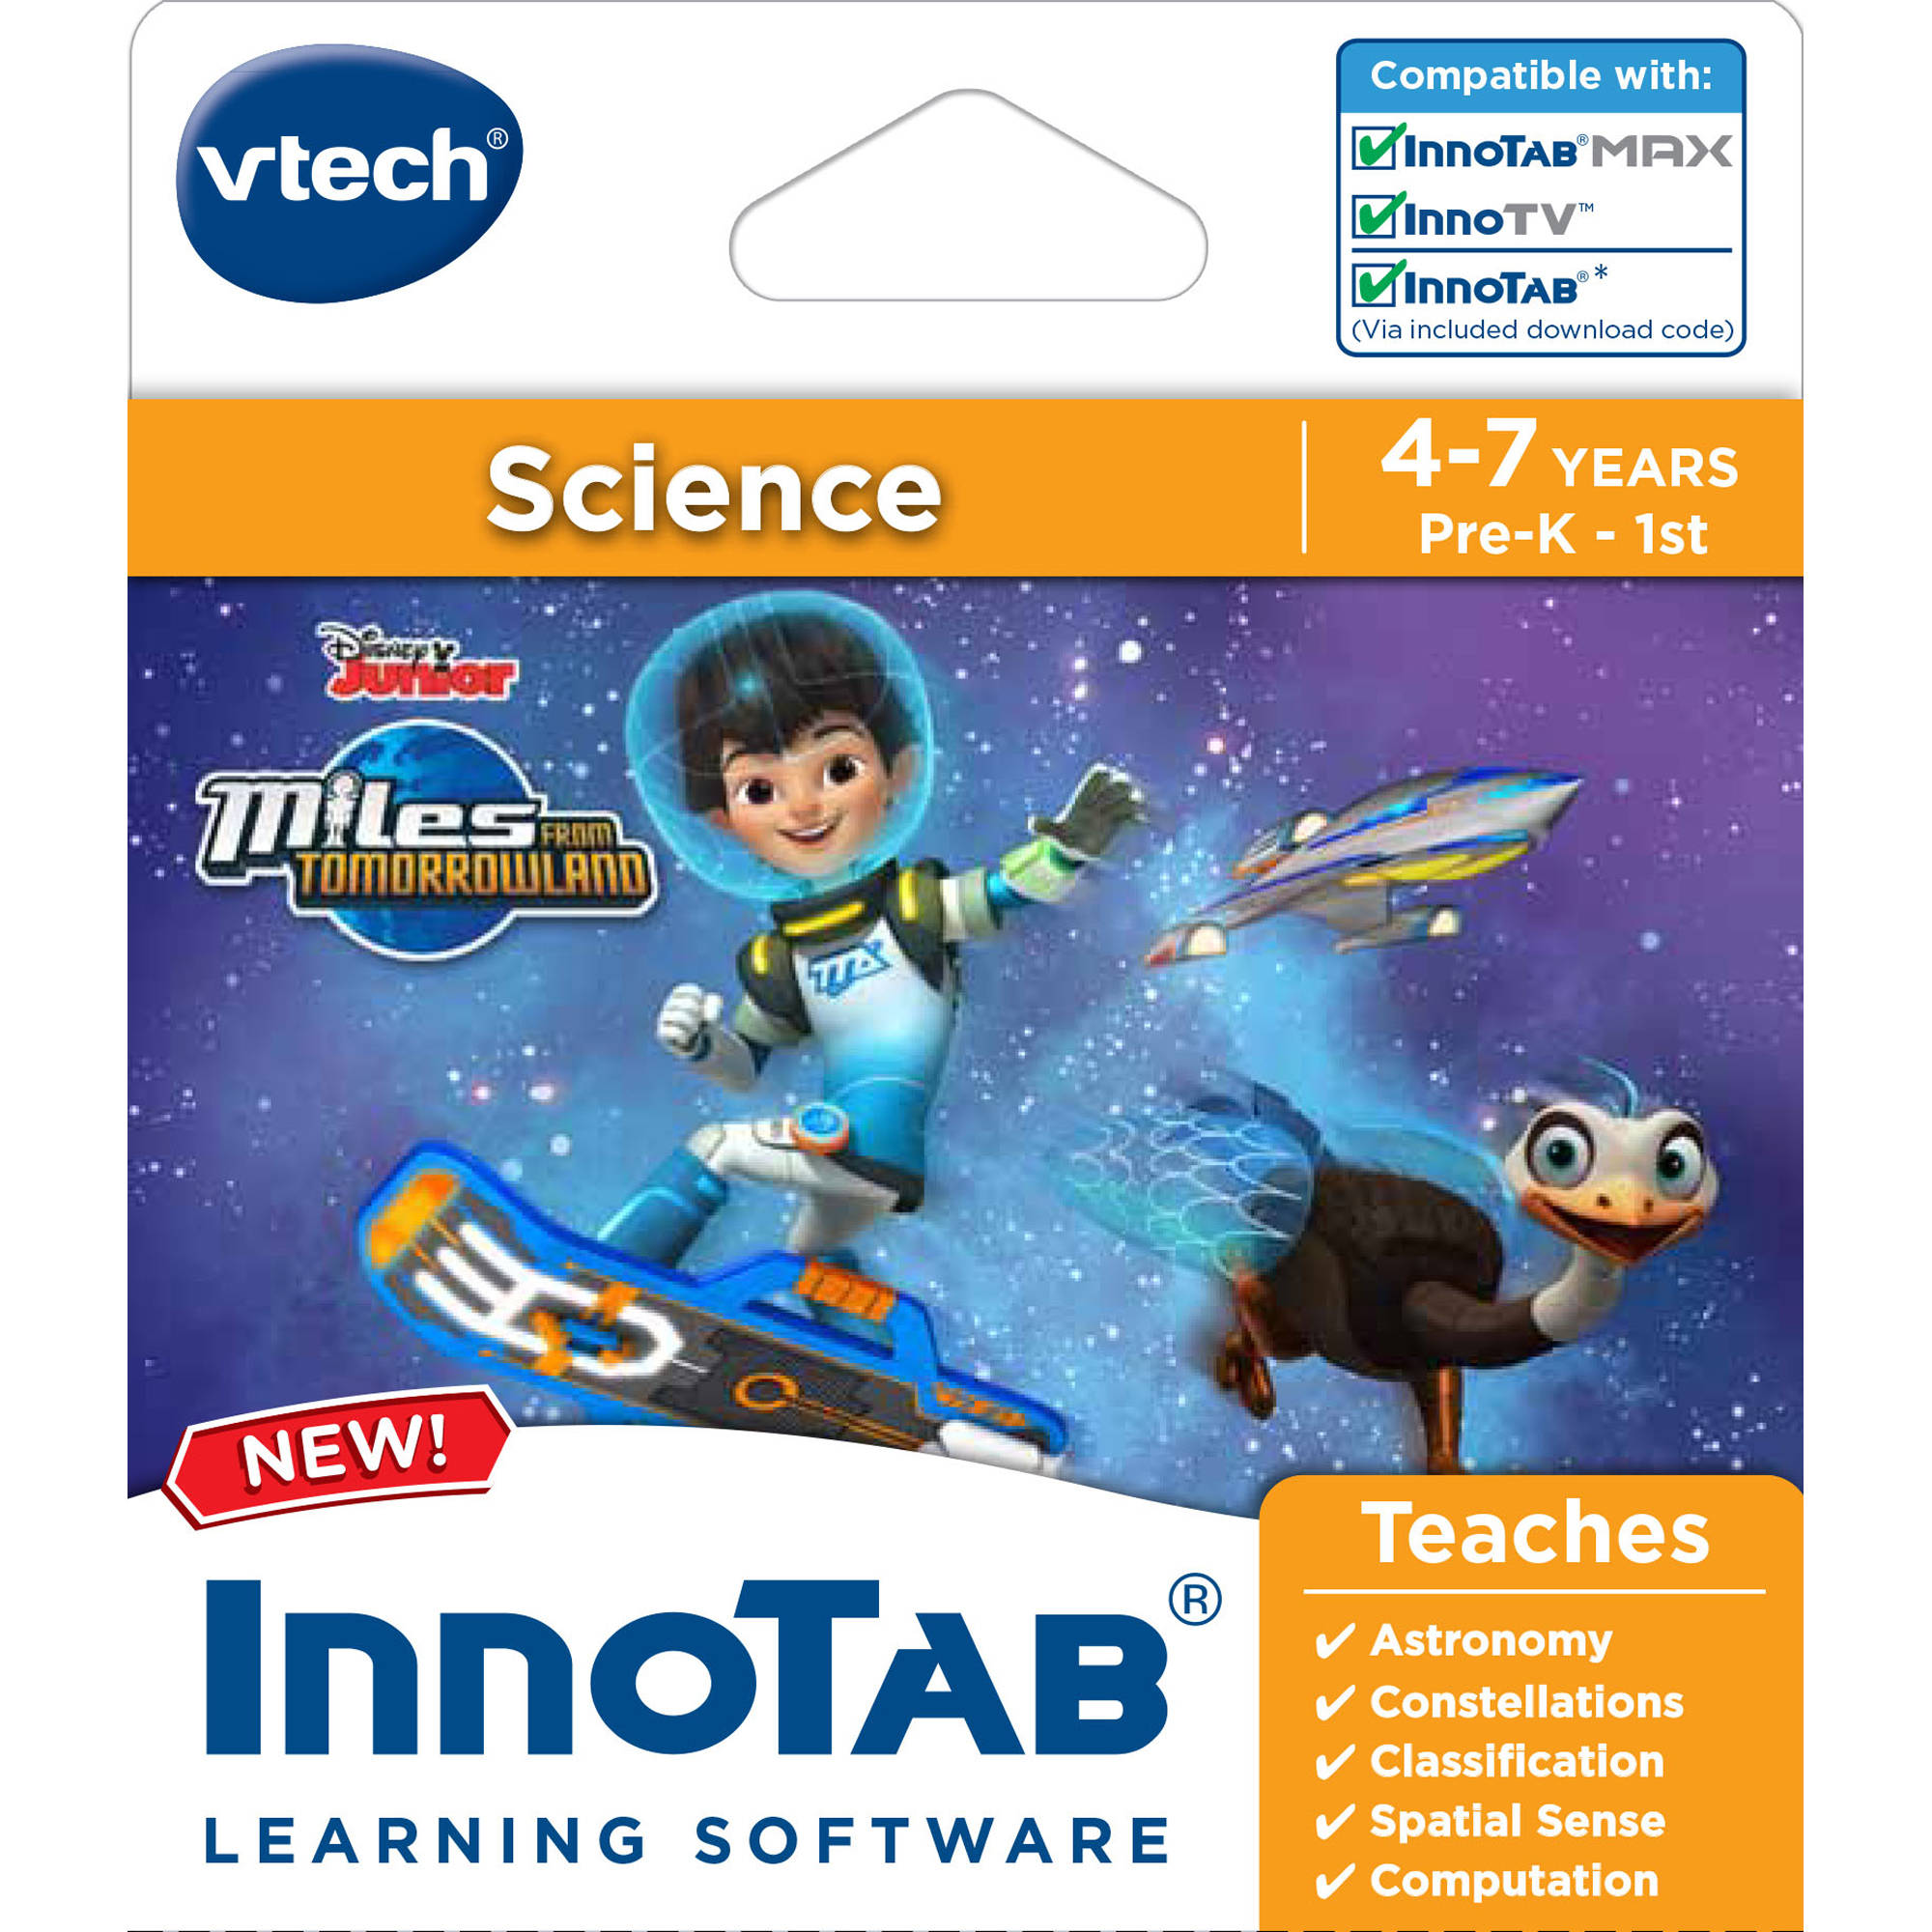 InnoTab Miles from Tomorrowland